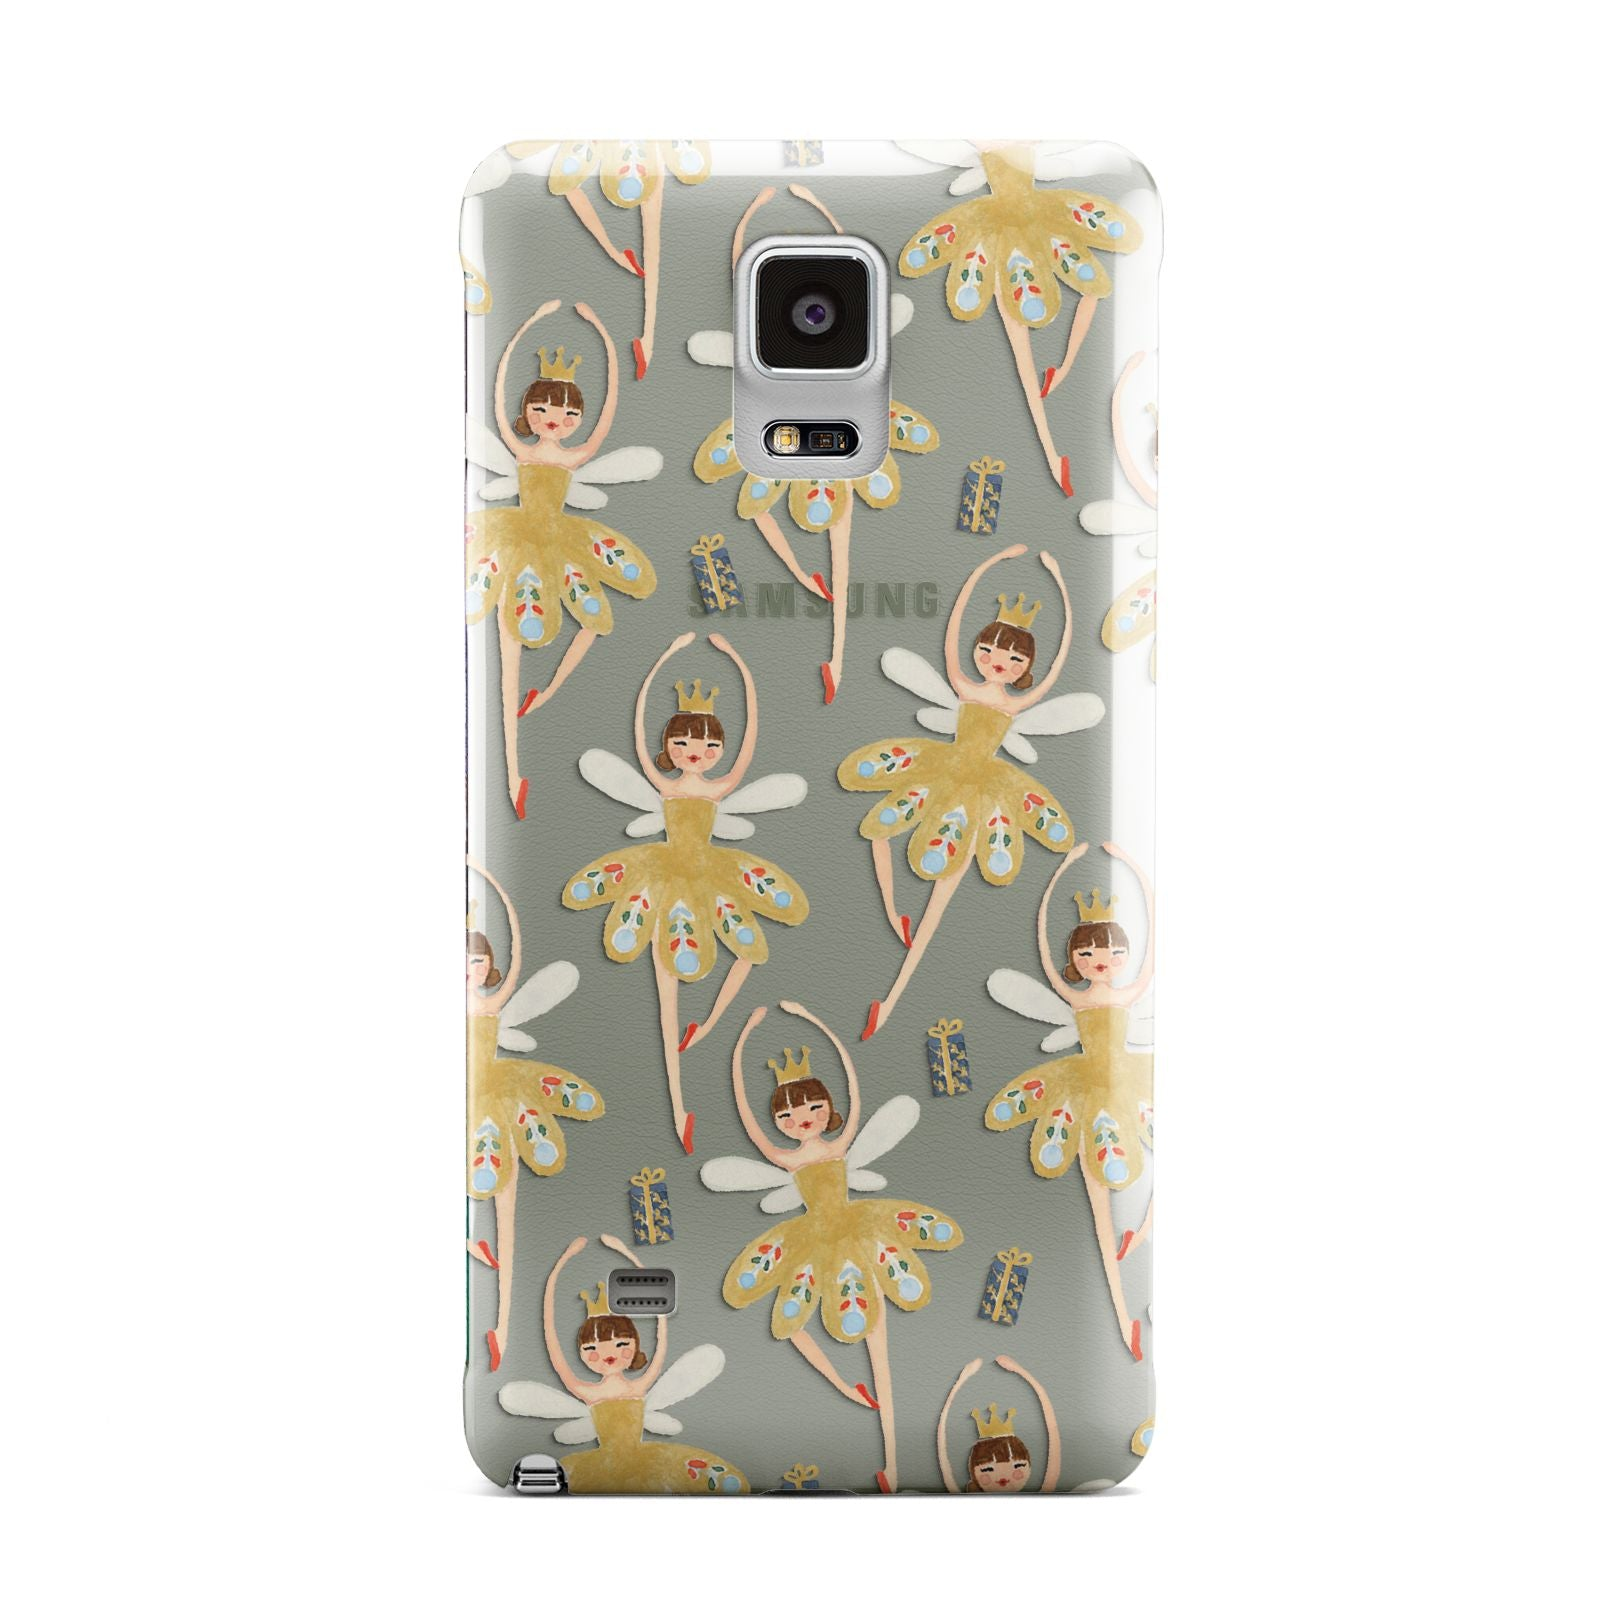 Dancing ballerina princess Samsung Galaxy Note 4 Case